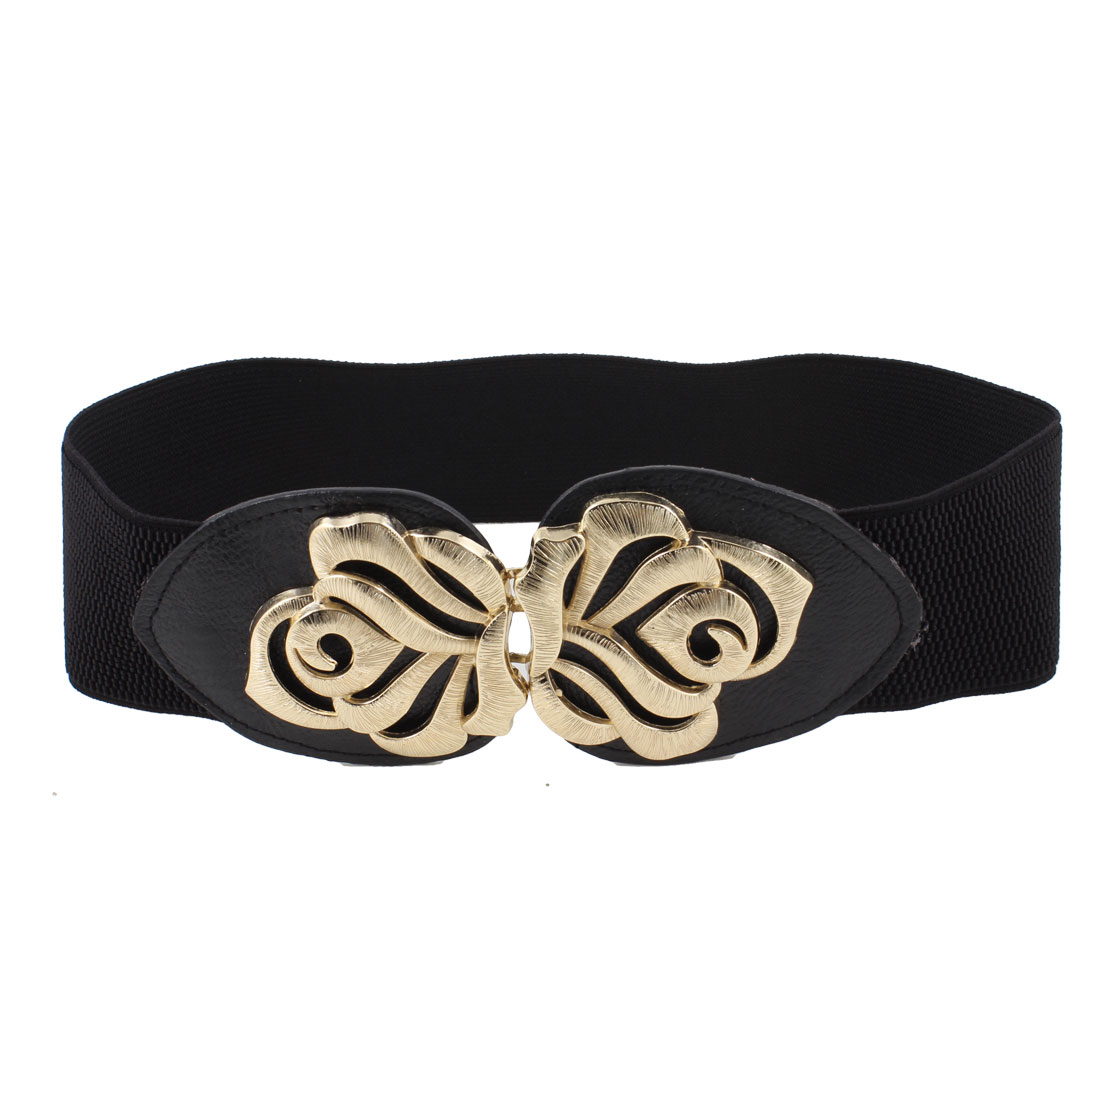 Metal Interlock Buckle Flower Detail Stretchy Waistband Belt Black for Lady